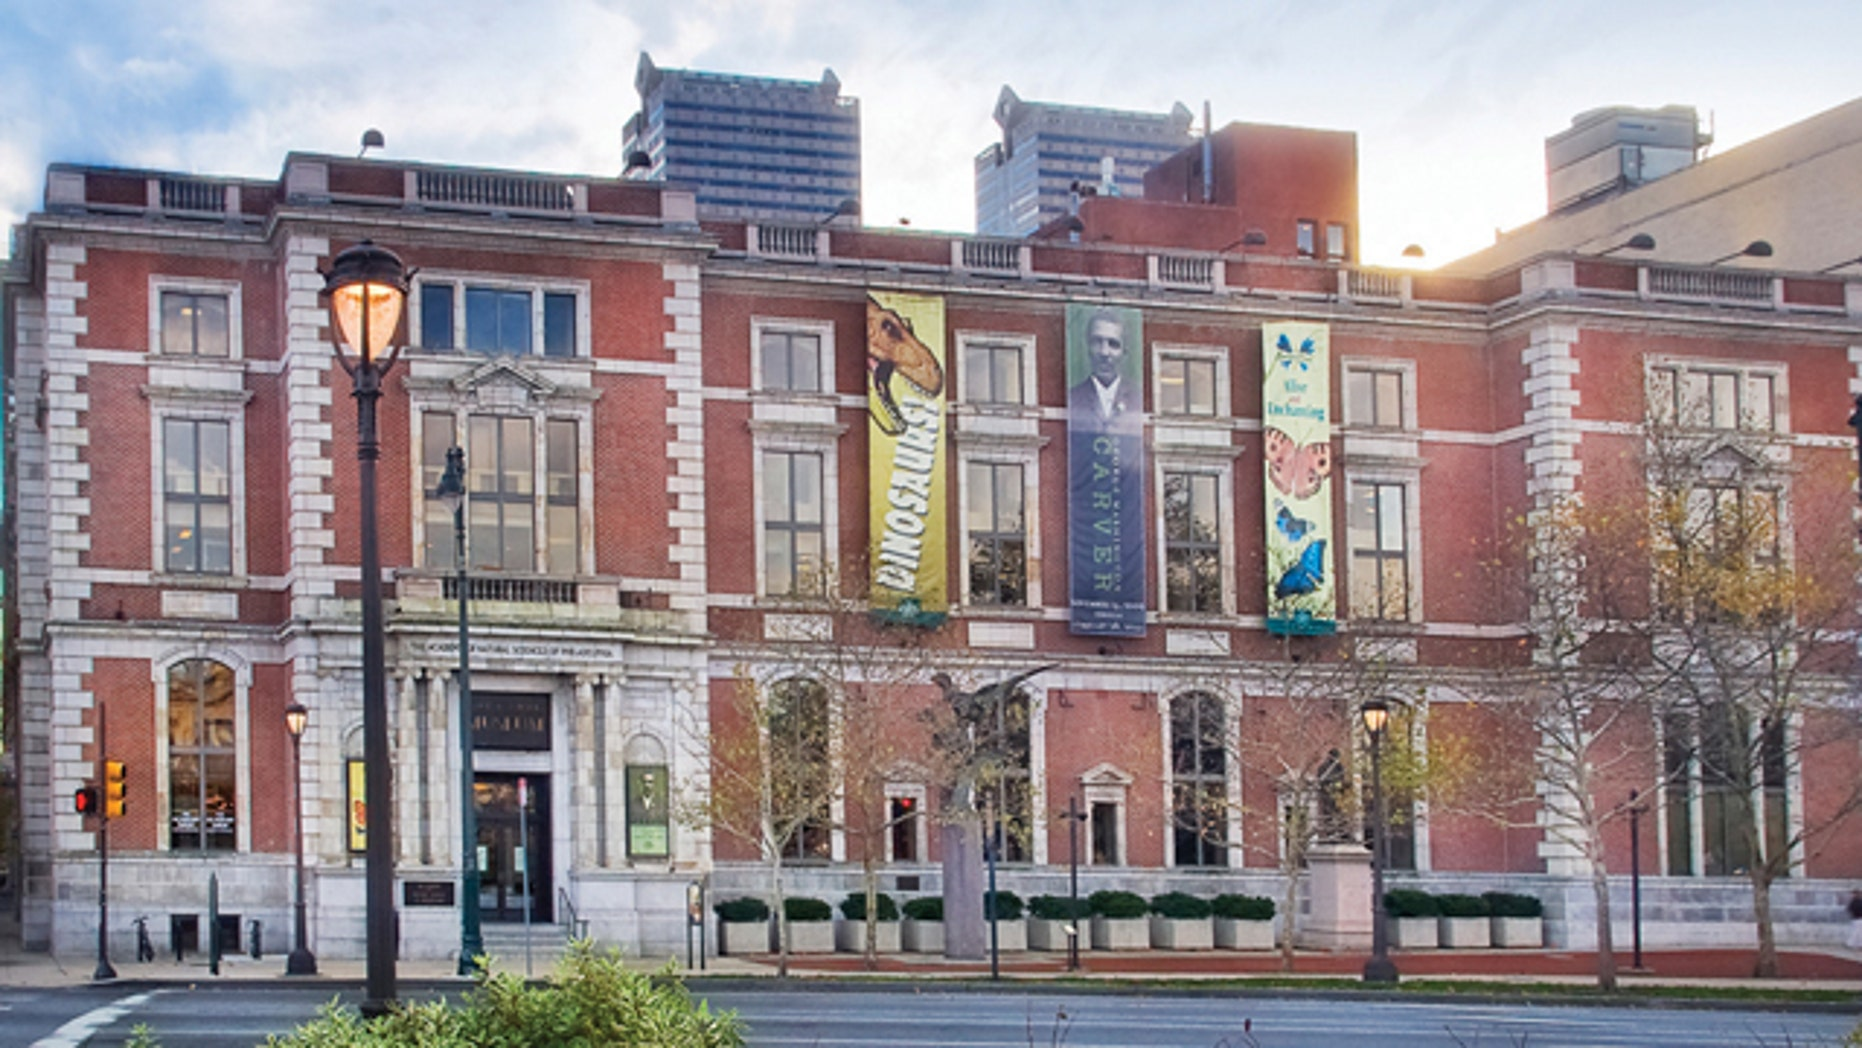 The Academy of Natural Sciences in Philadelphia, where the first annual Geek Awards will be held on Friday, Aug. 19.